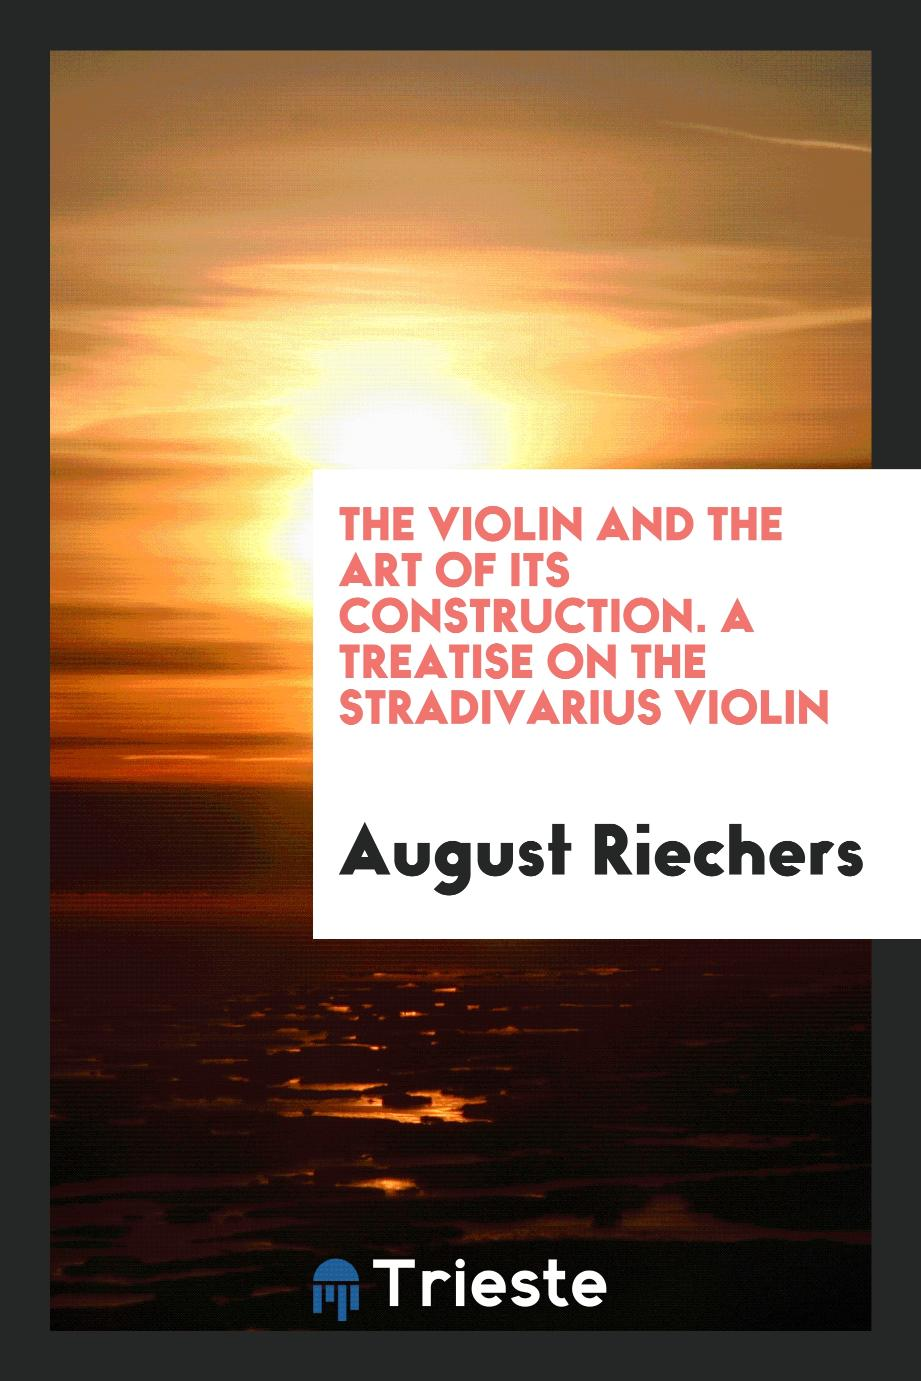 The violin and the art of its construction. A treatise on the Stradivarius violin